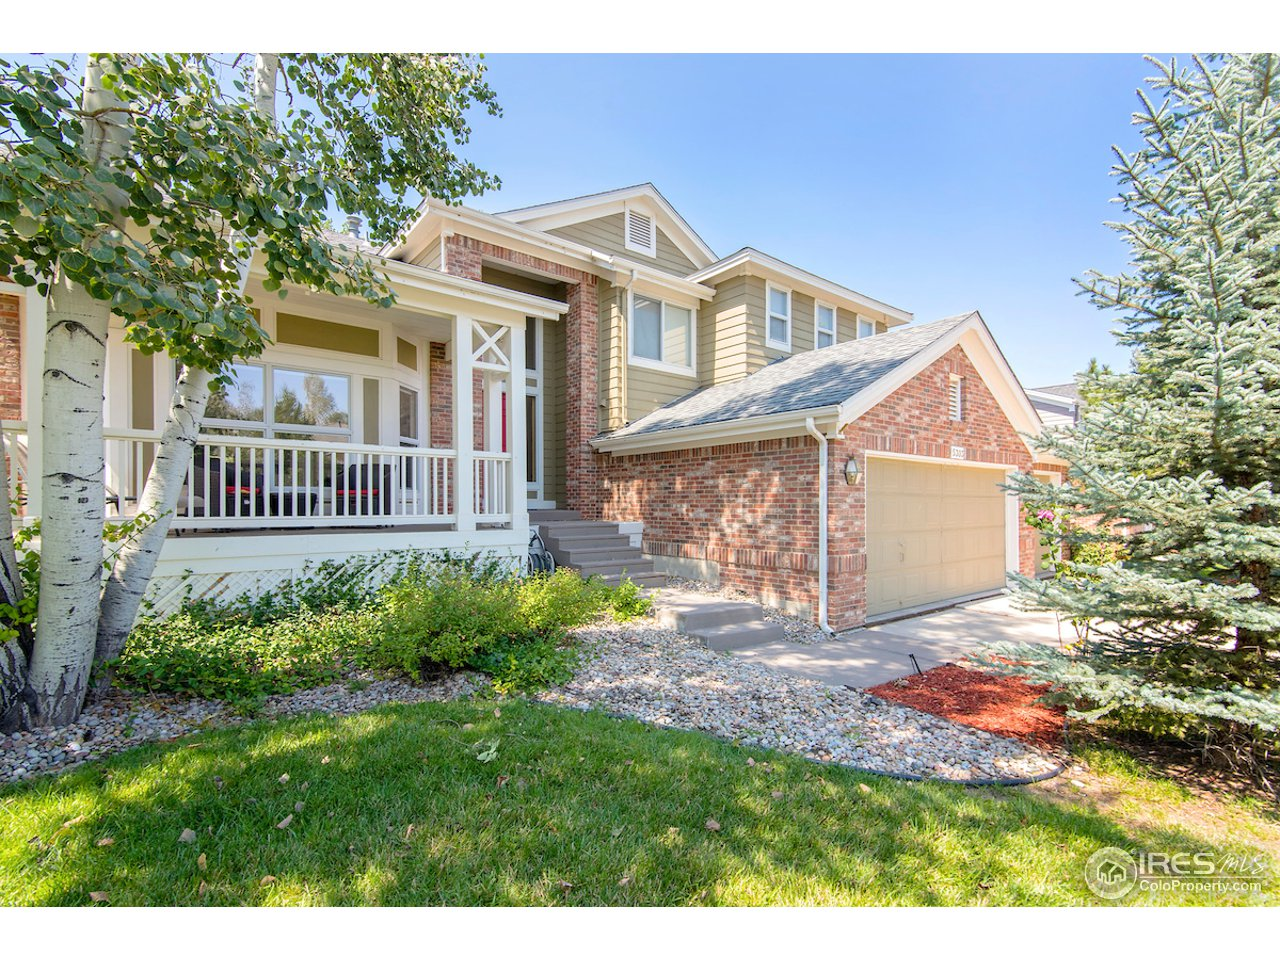 5303 Deer Creek Ct, Boulder, CO 80301